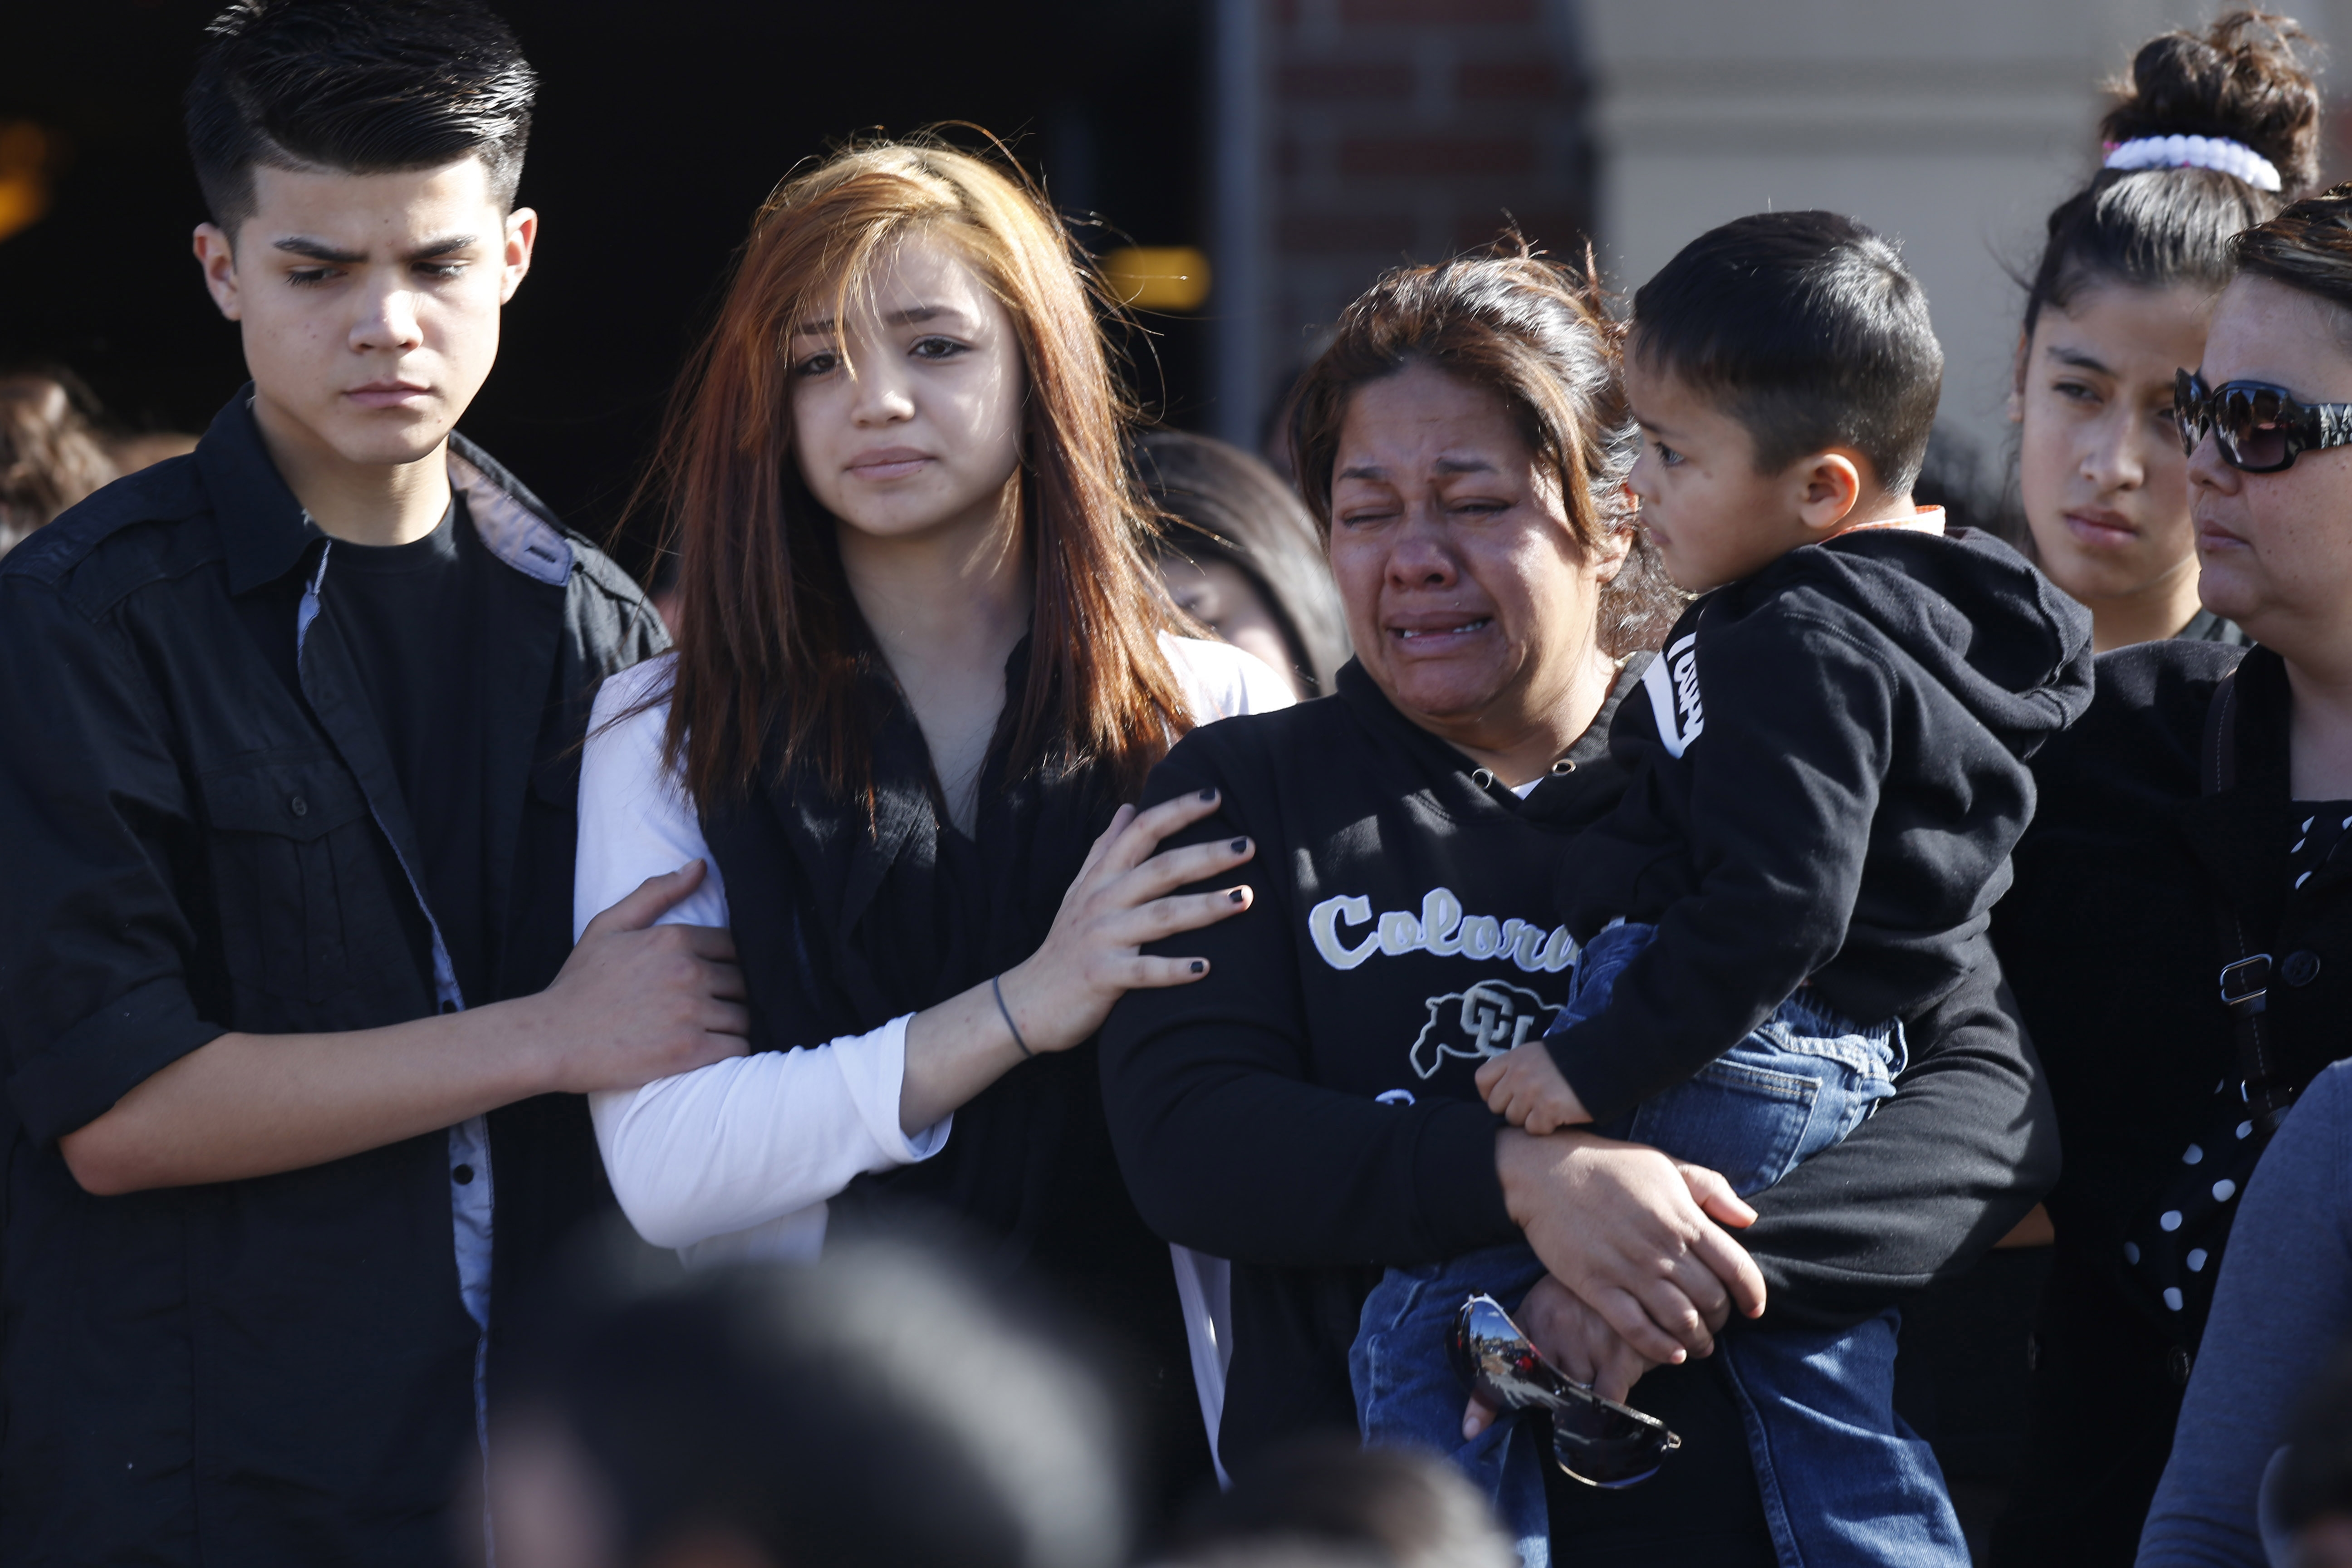 Photo: Laura Hernandez and family (AP Photo)